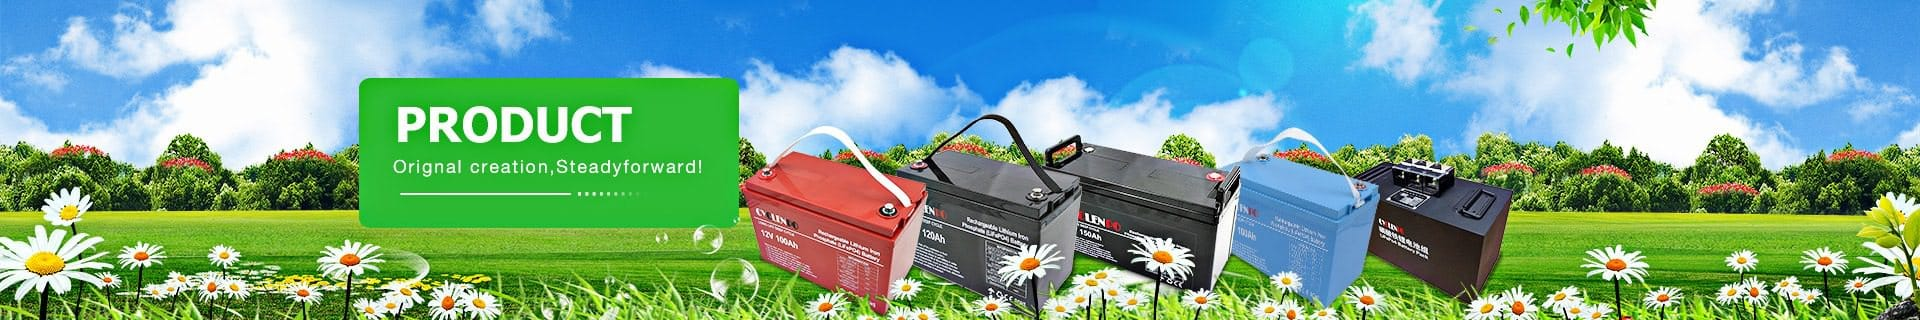 Lithium Ion Battery 12V 200Ah Price, Built In BLUETOOTH - Cyclen Lifepo4 Battery